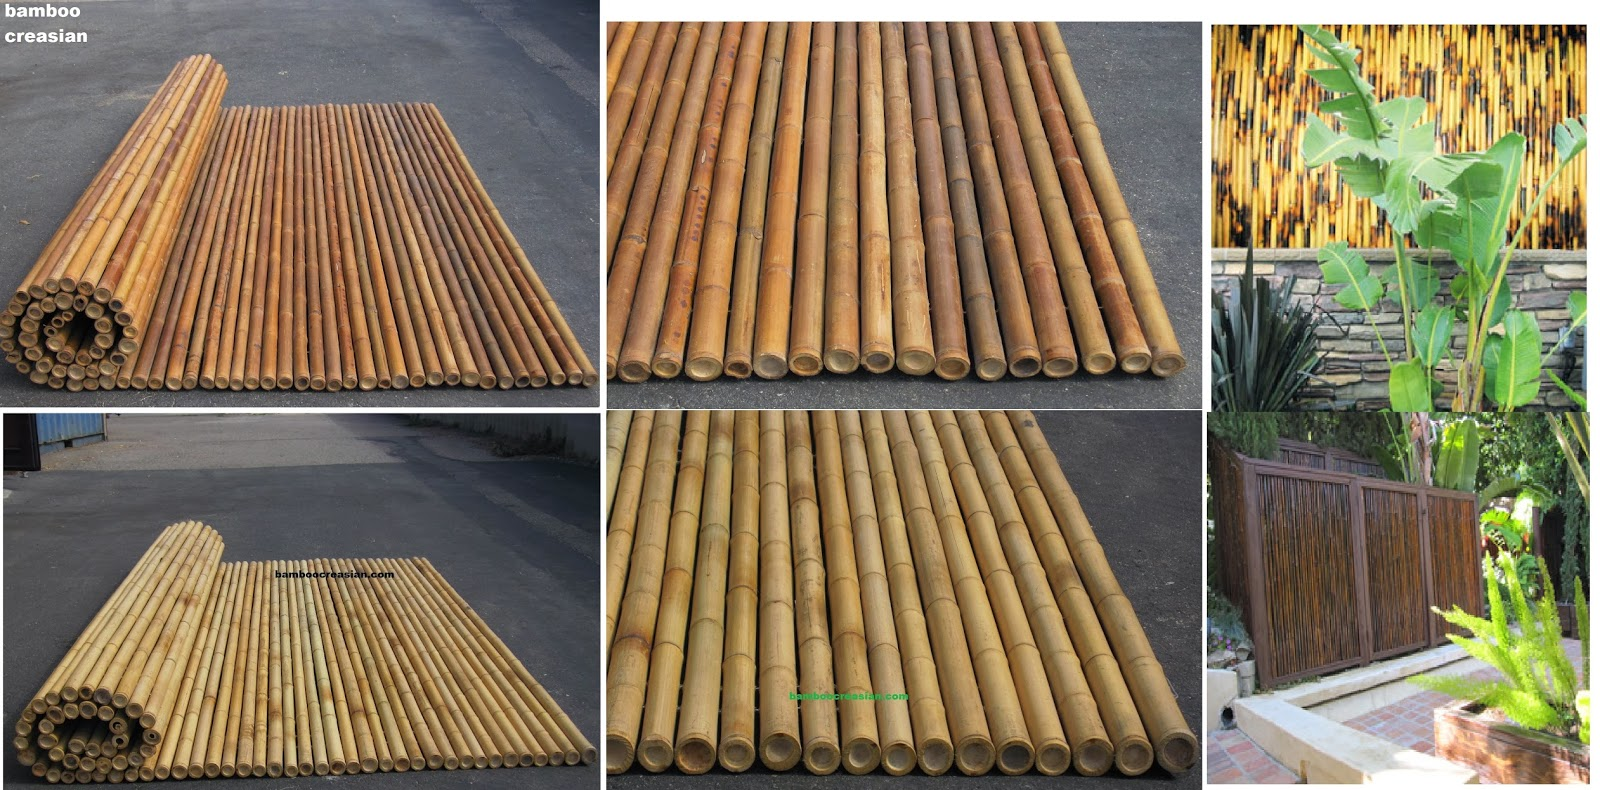 Genial Rolled Bamboo Fences| Bamboo Fencing| Big Bamboo Poles| Bamboo Wall  Covering; Bamboo Matting